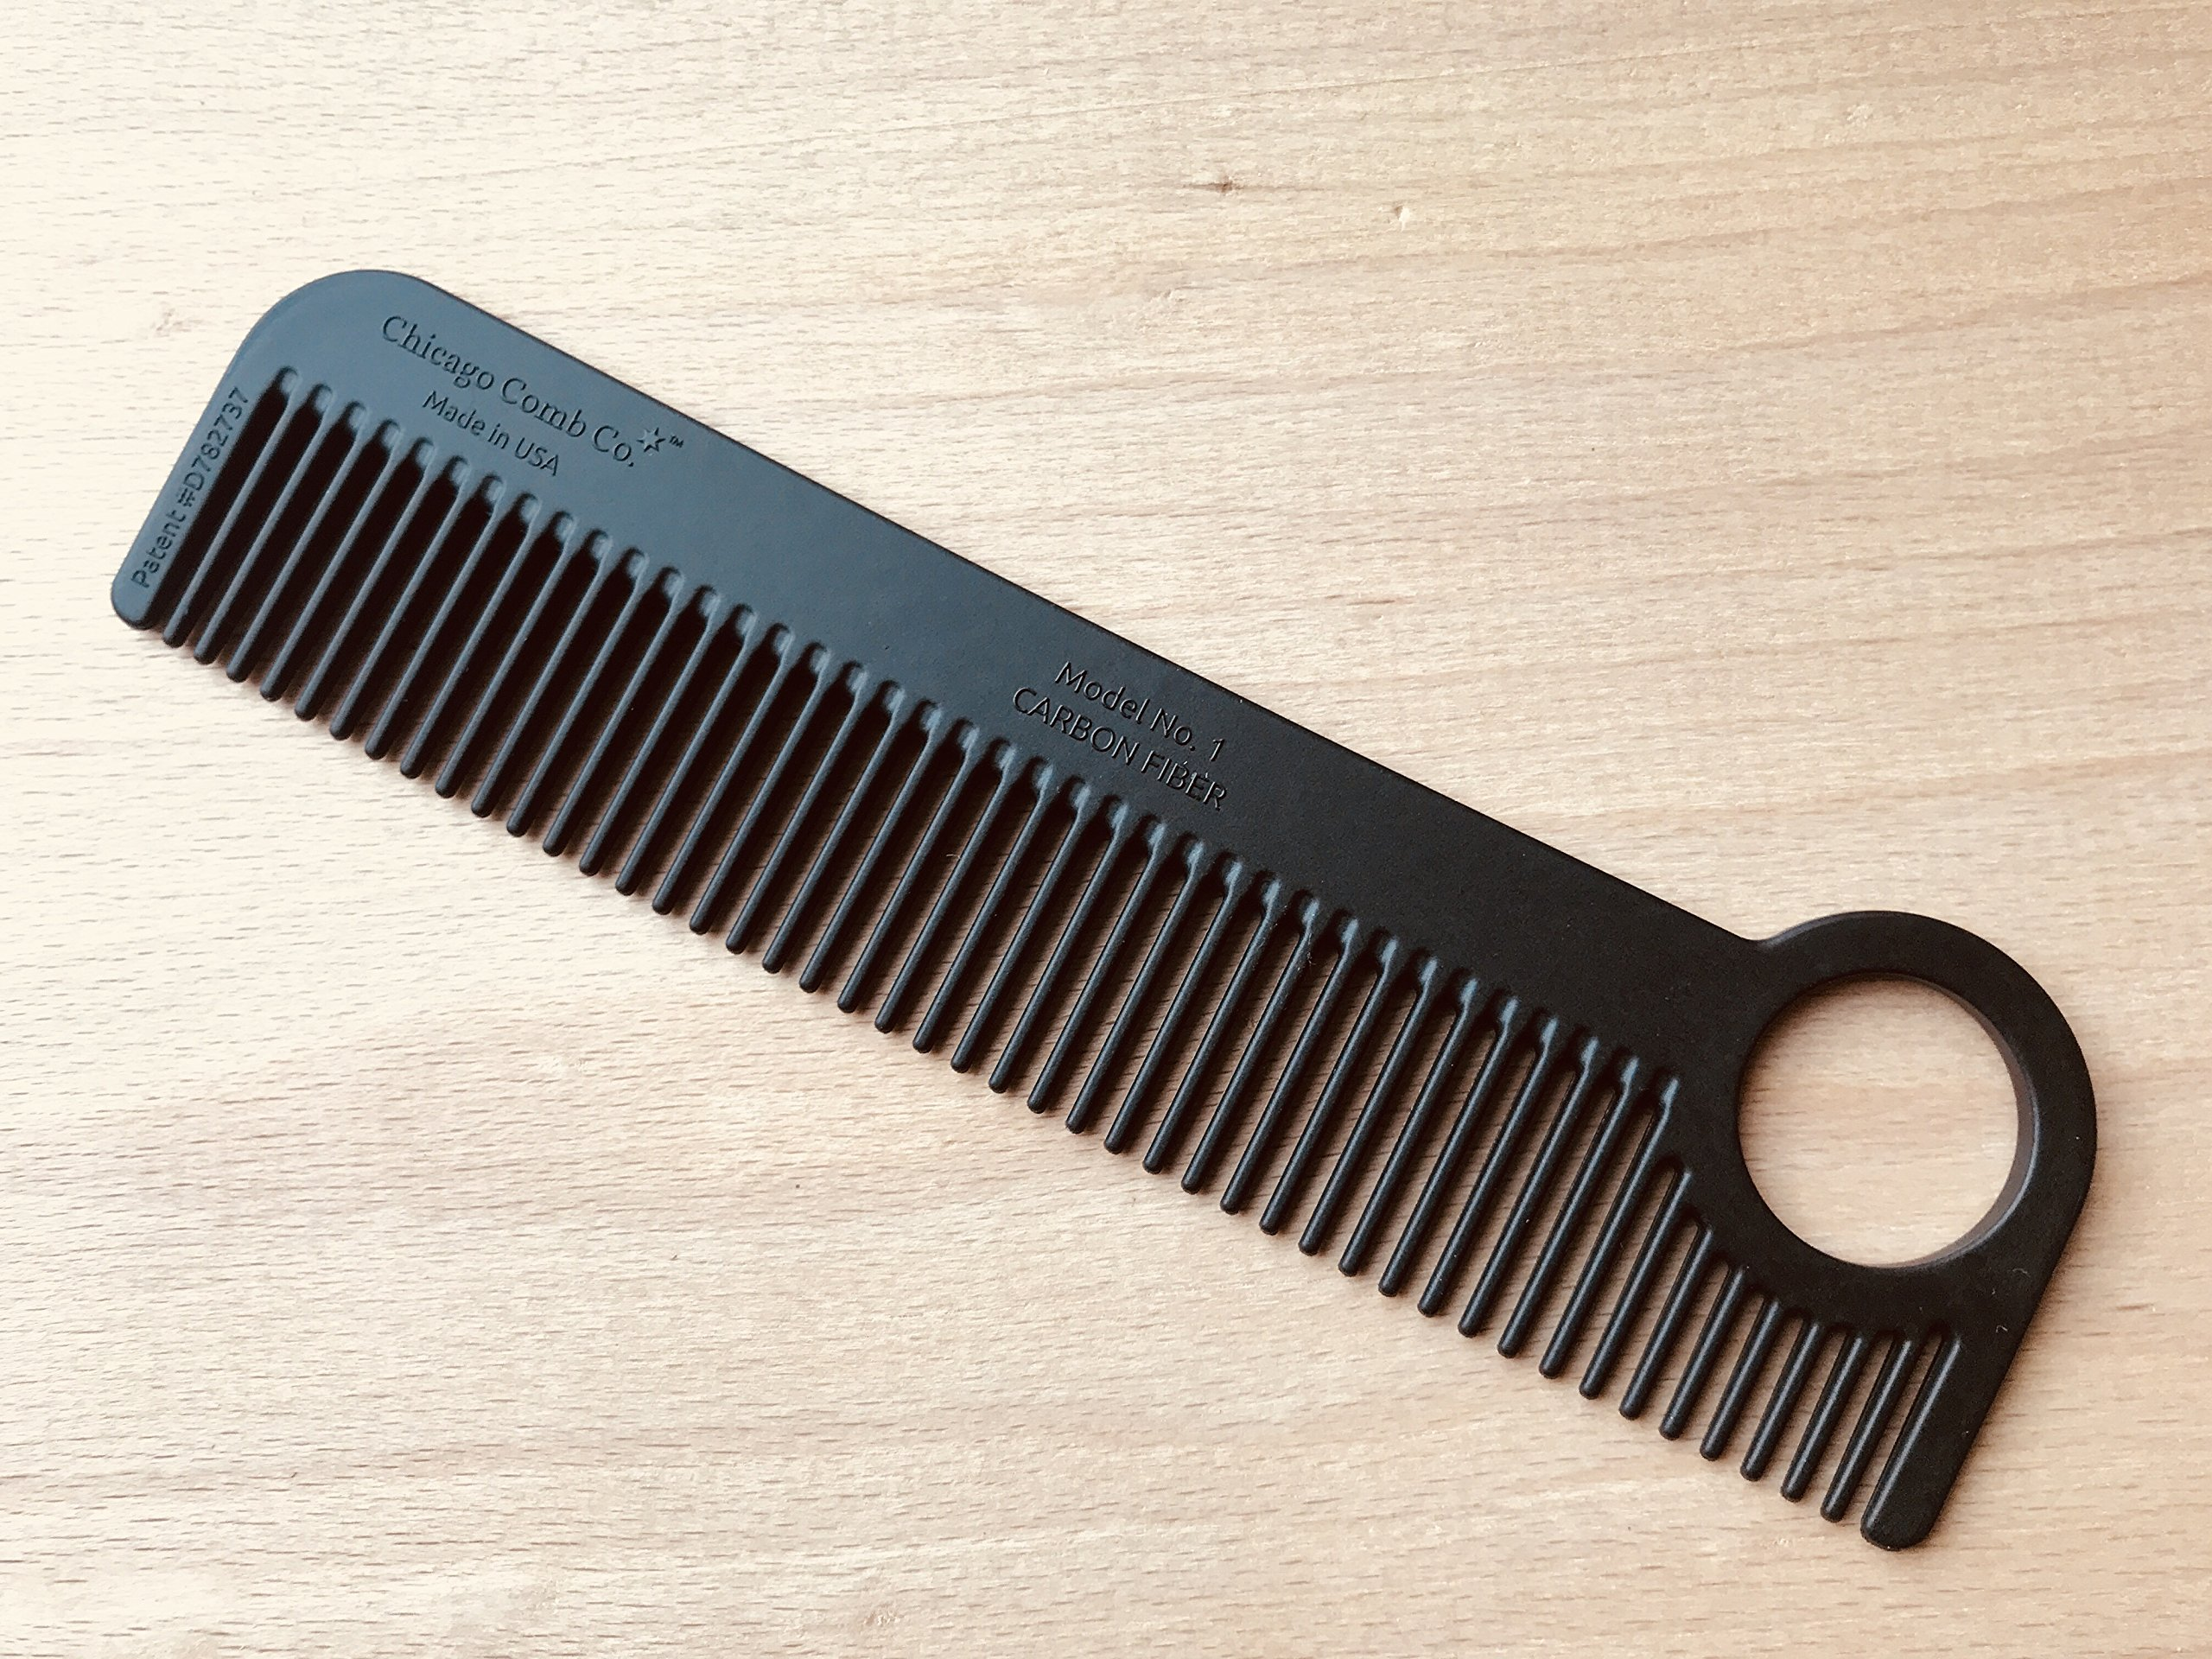 Chicago Comb Model 1 Carbon Fiber, Made in USA, ultra smooth, strong, and light, anti-static, heat-resistant, 5.5 inches (14 cm) long, ultimate daily use, pocket, and travel comb by Chicago Comb (Image #3)